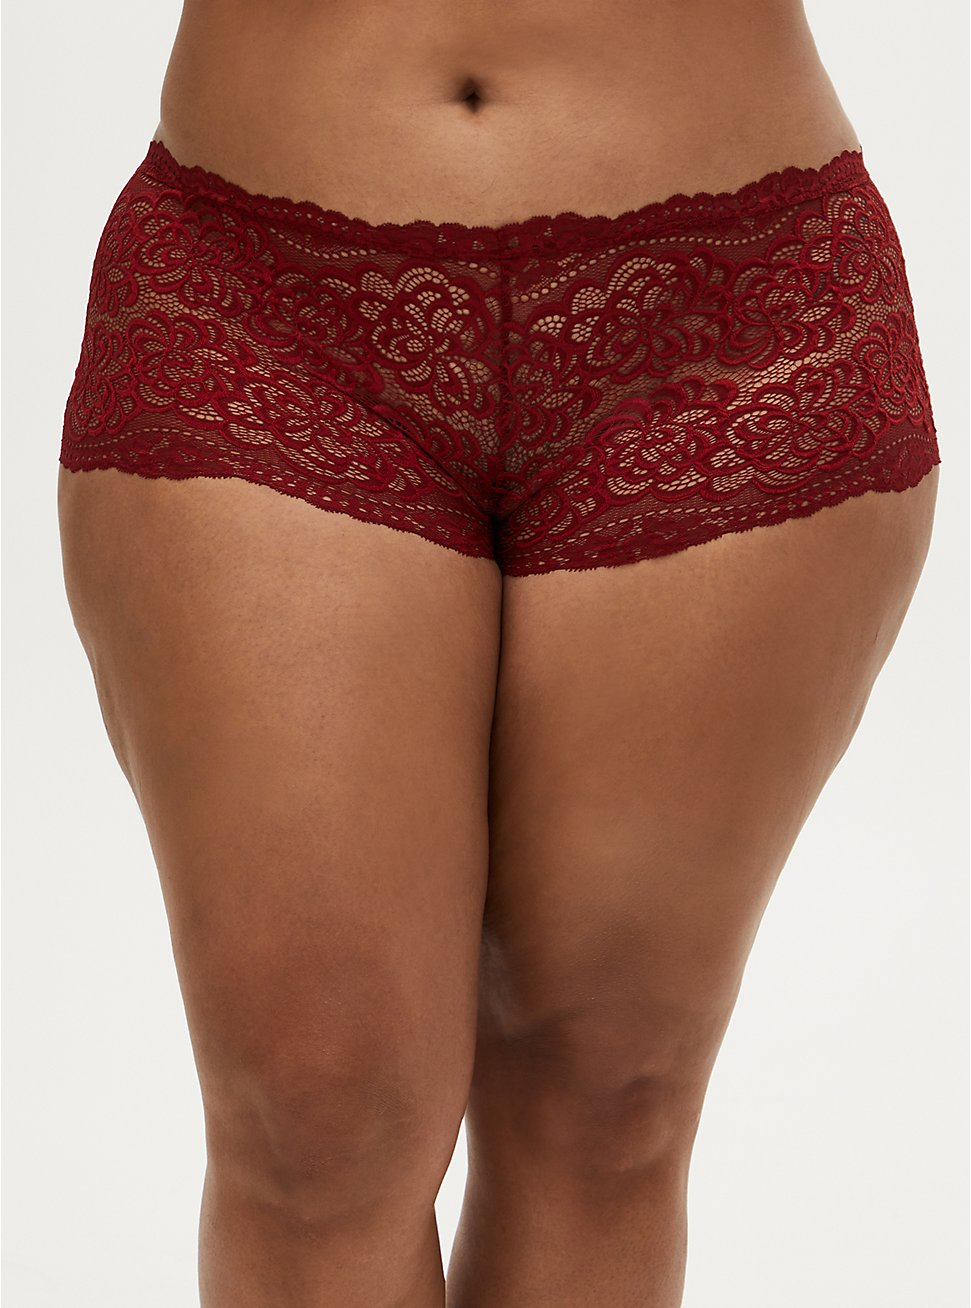 Dark Red Lace Cheeky Panty, JESTER RED, hi-res